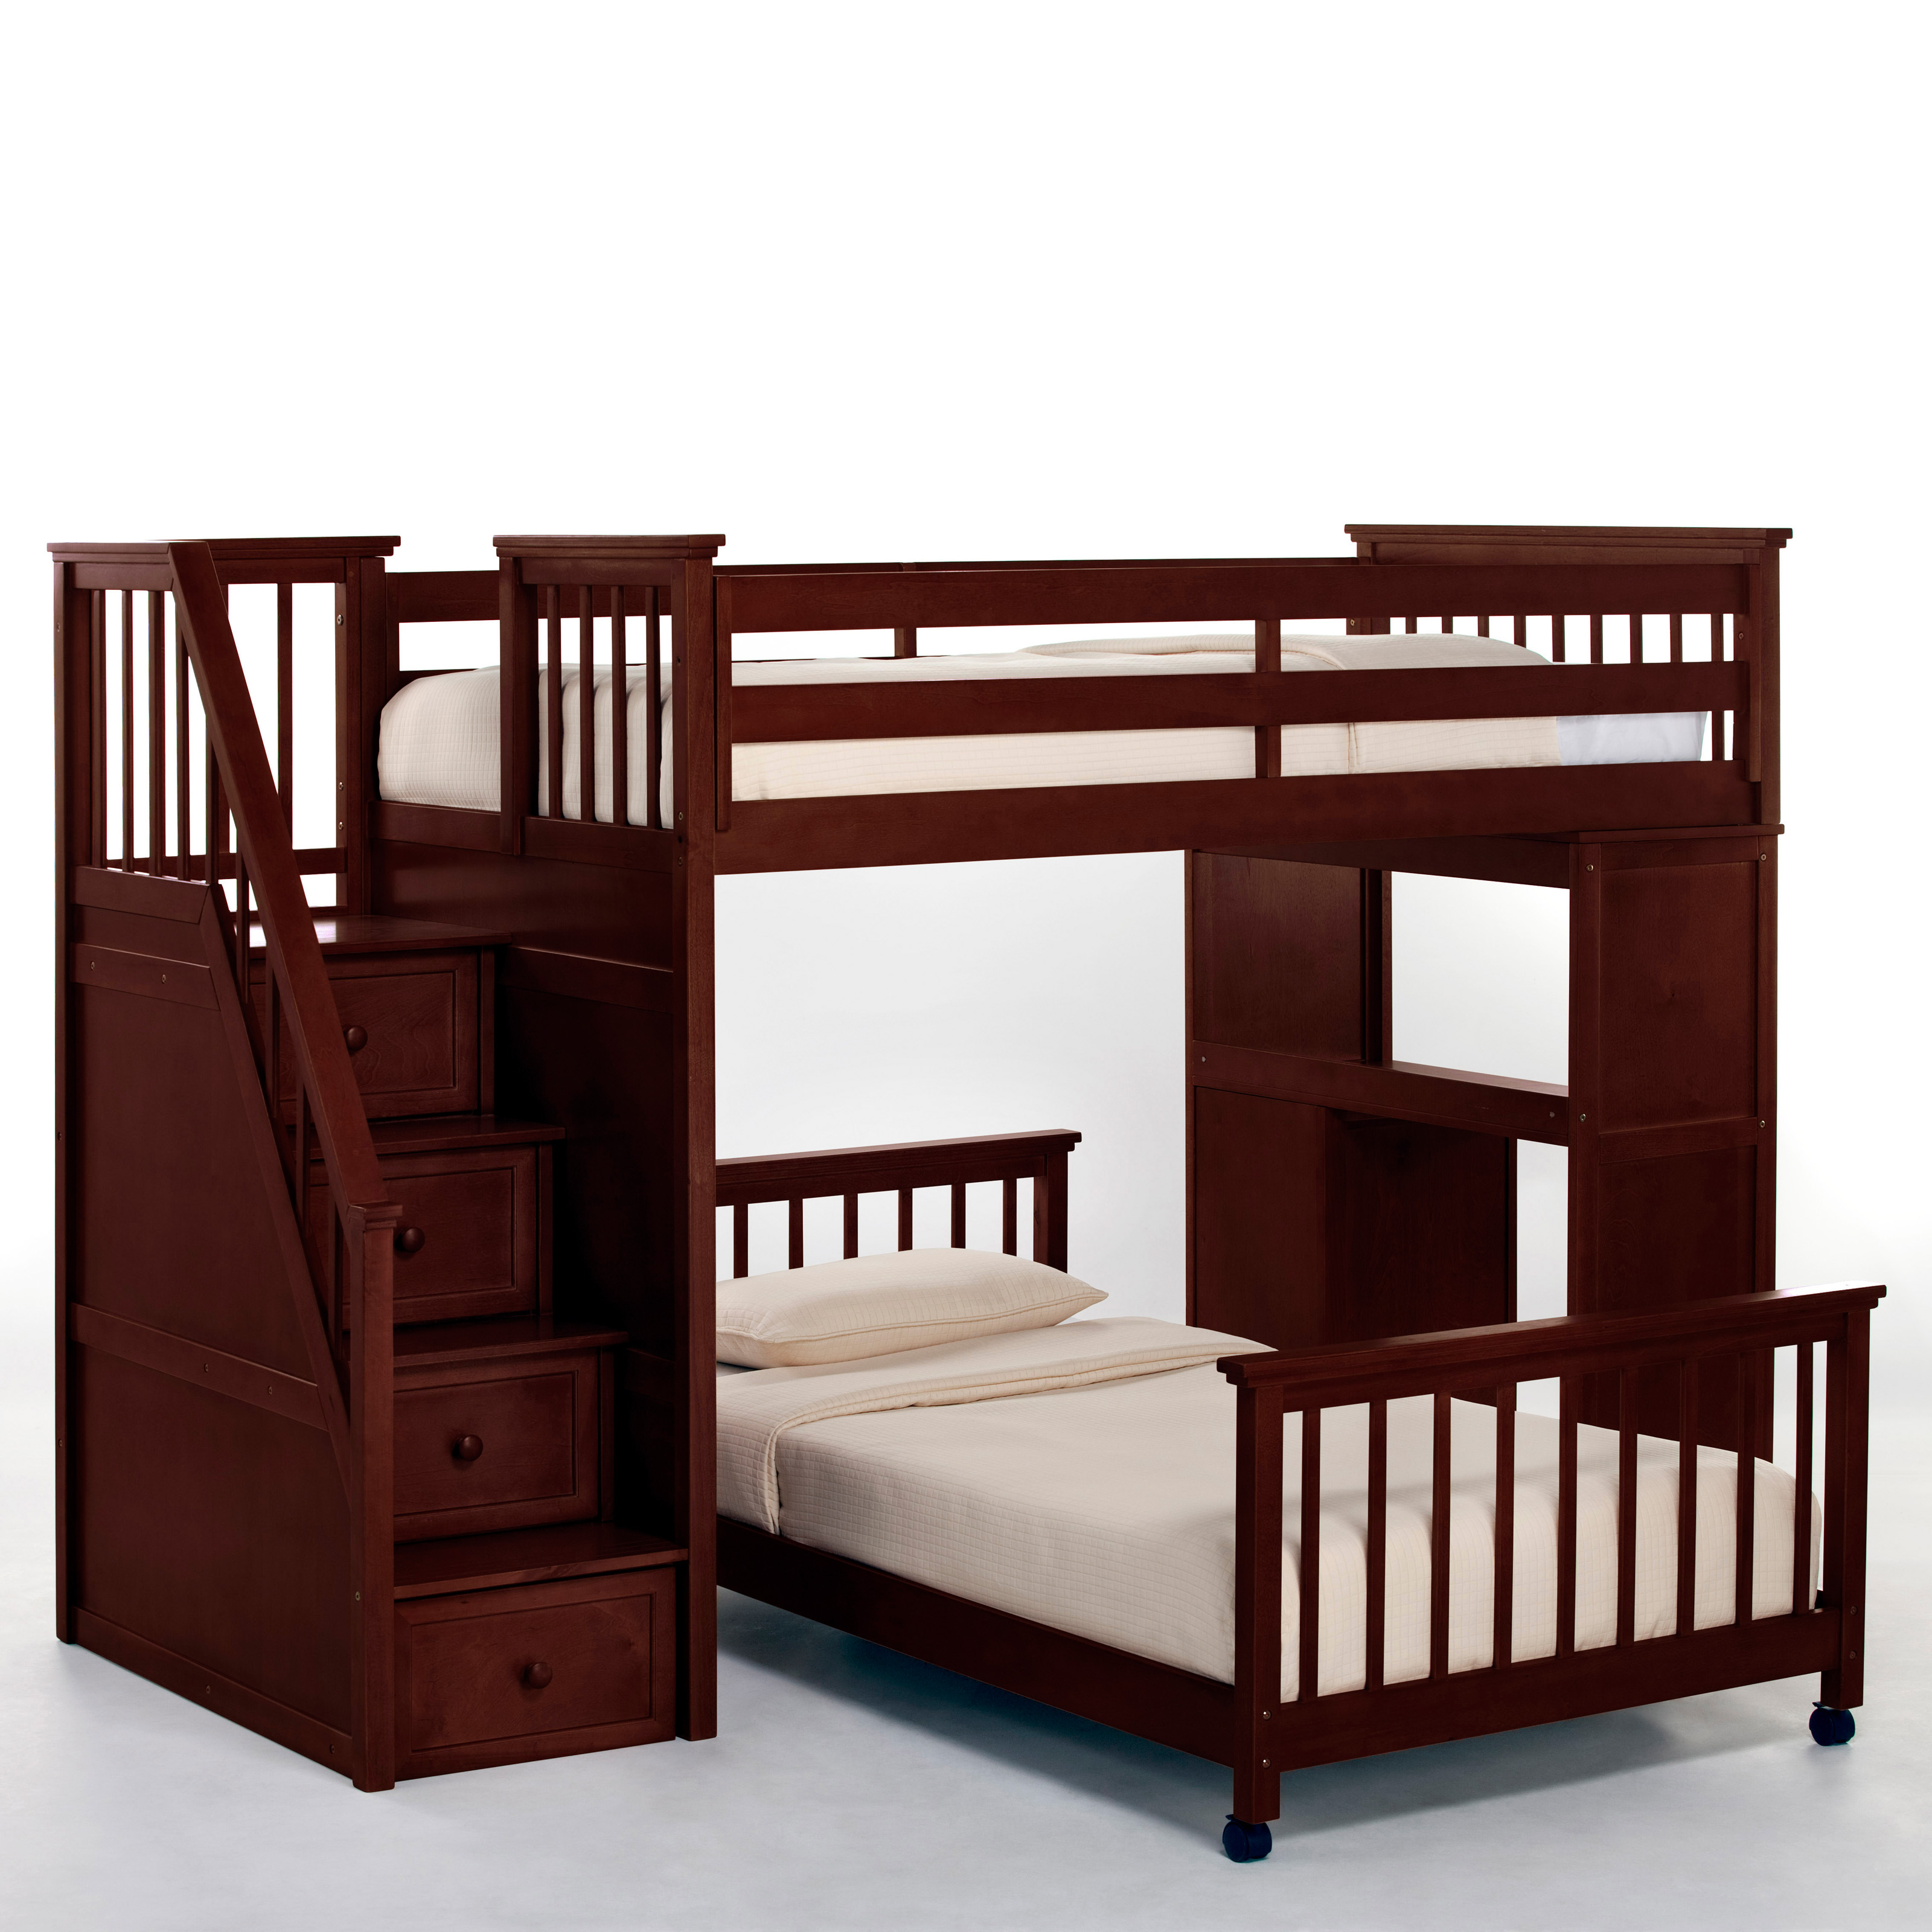 Cool Bunk Beds For 4 View r Cool Bunk Beds For 4 Dmbs